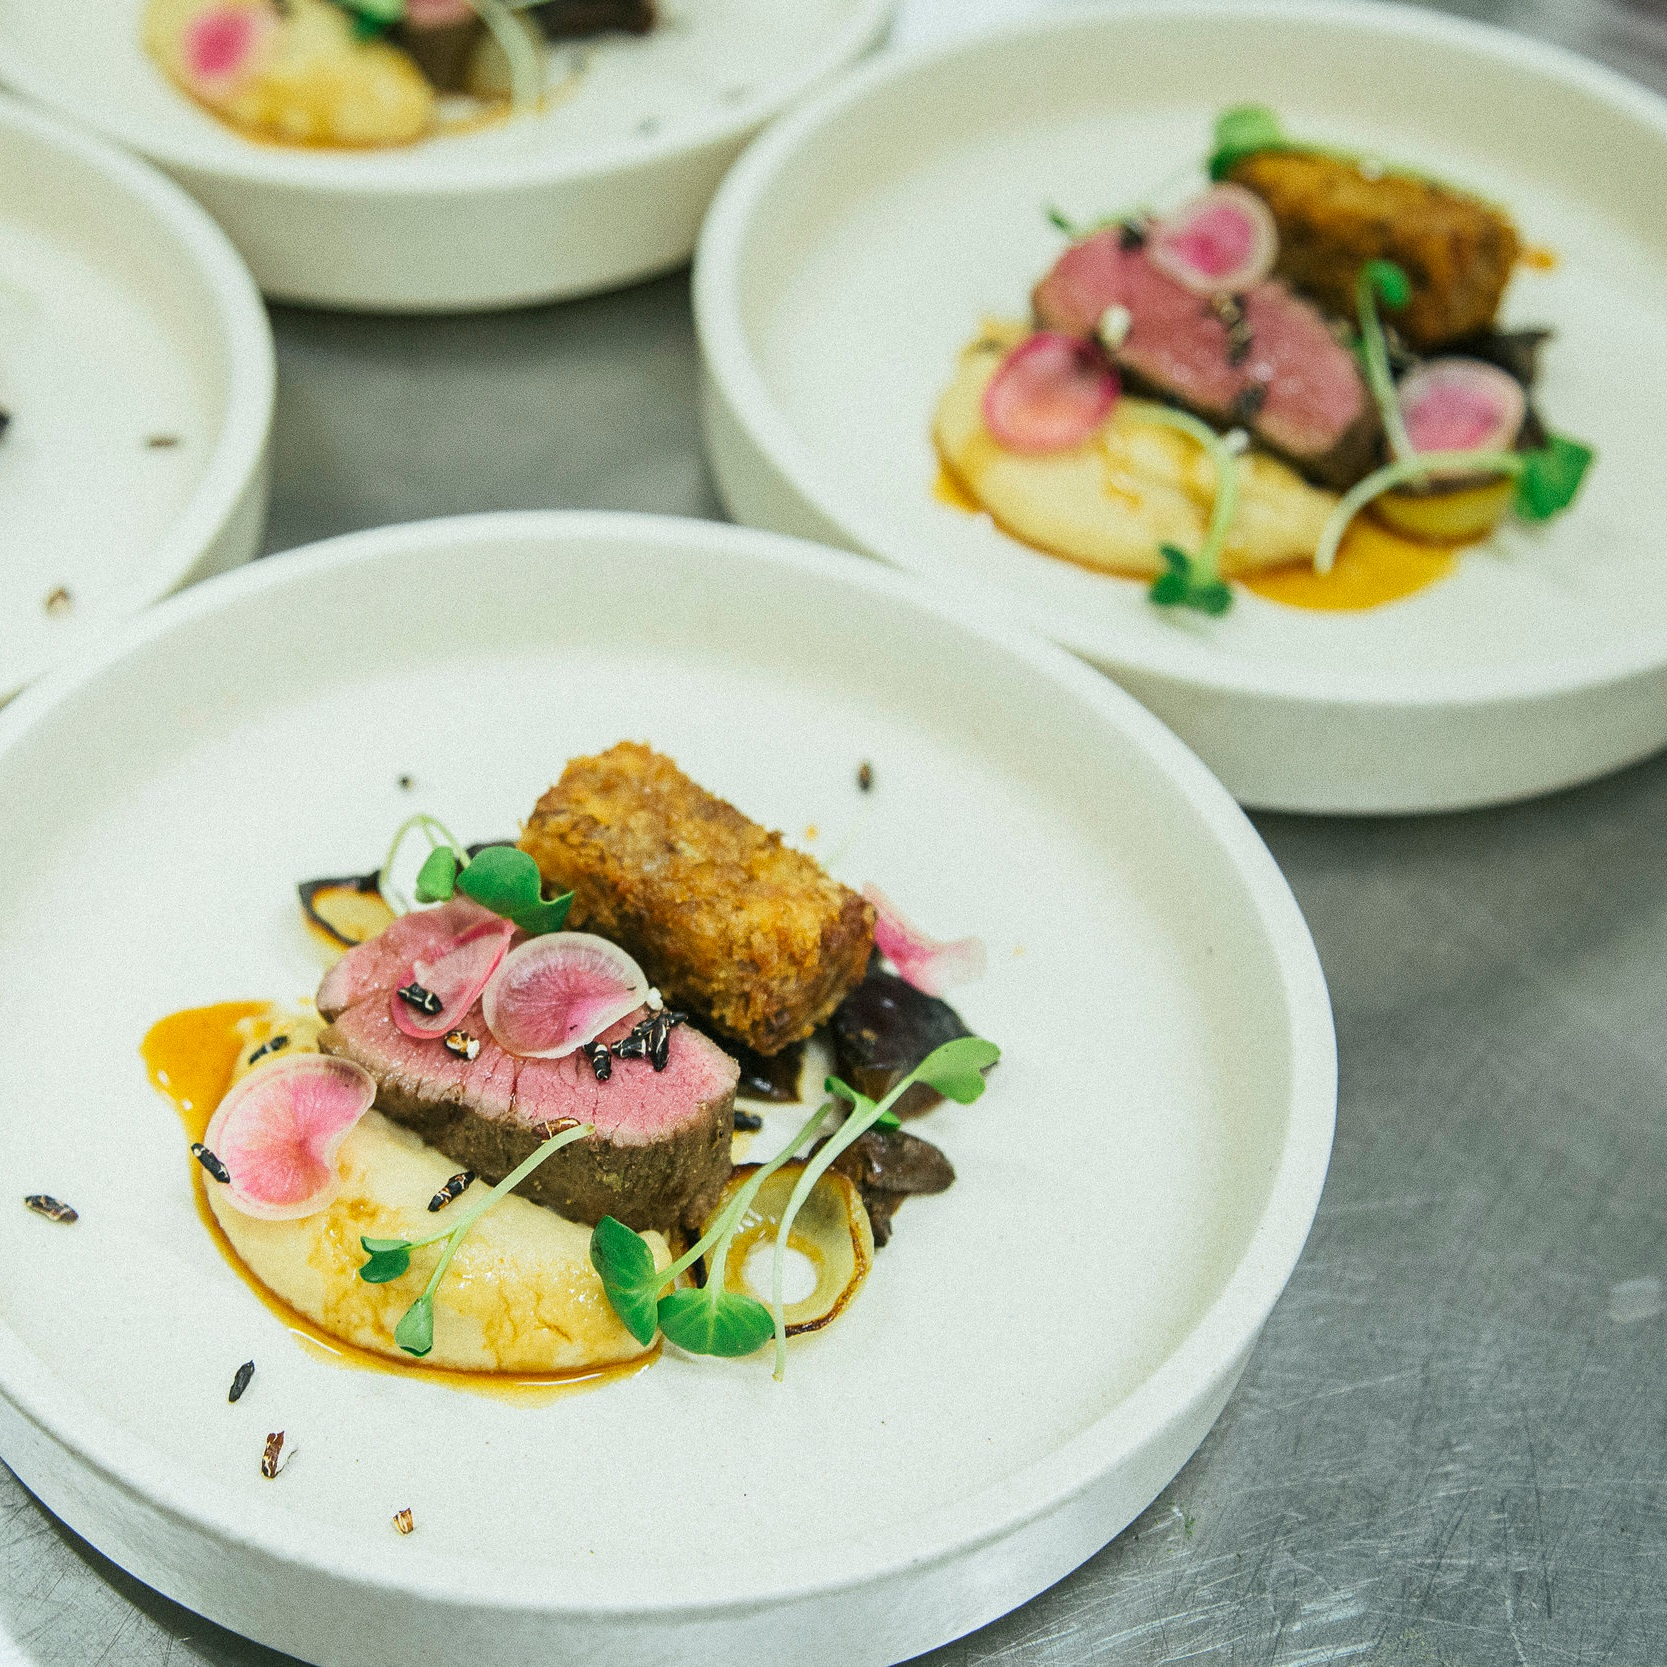 Confit lamb belly and seared aged lamb topside